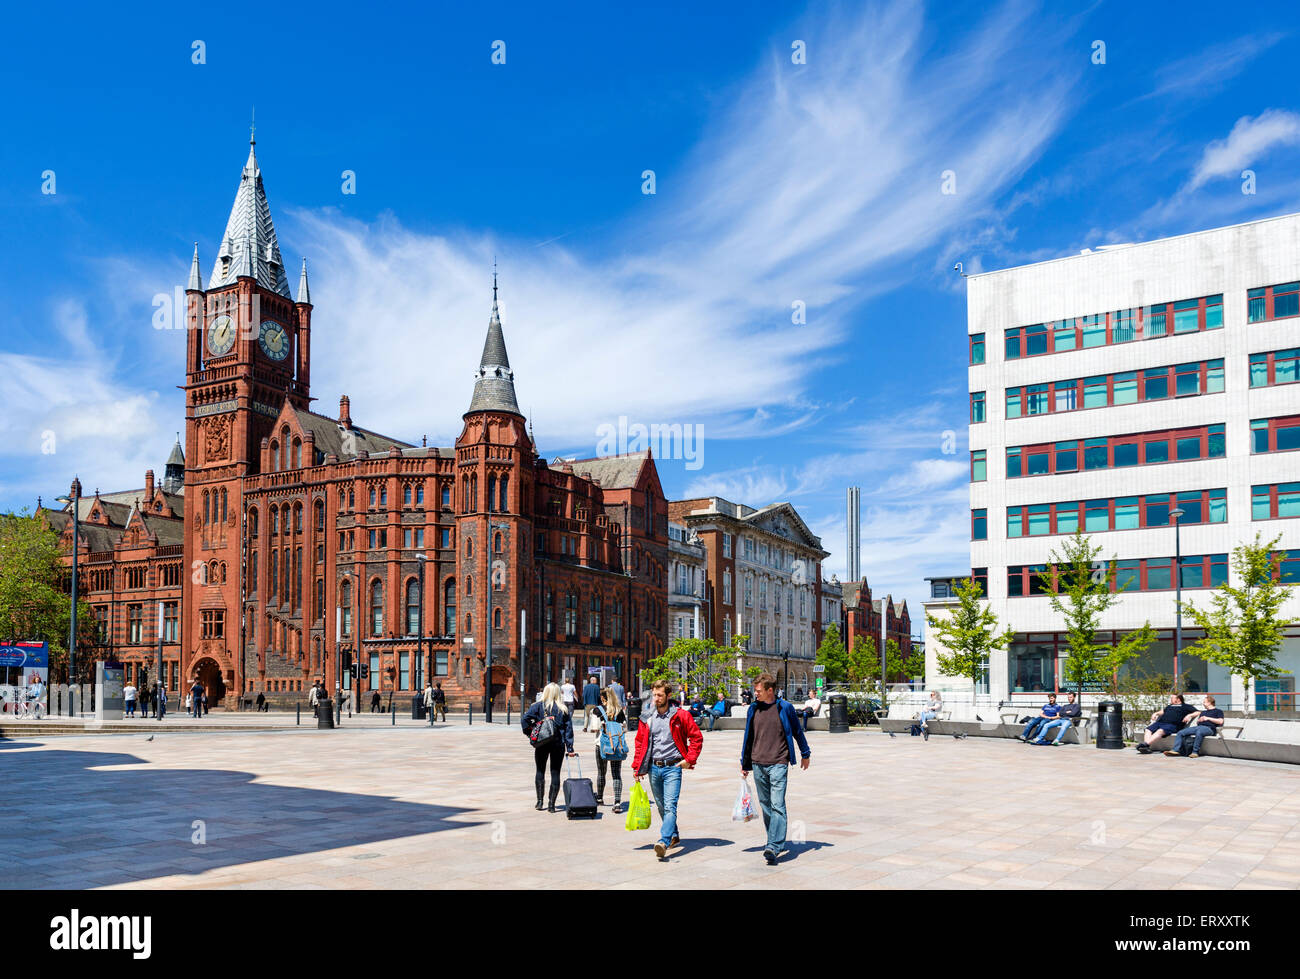 University of Liverpool looking towards the Victoria Building, Brownlow Hill, Liverpool, Merseyside, England, UK - Stock Image